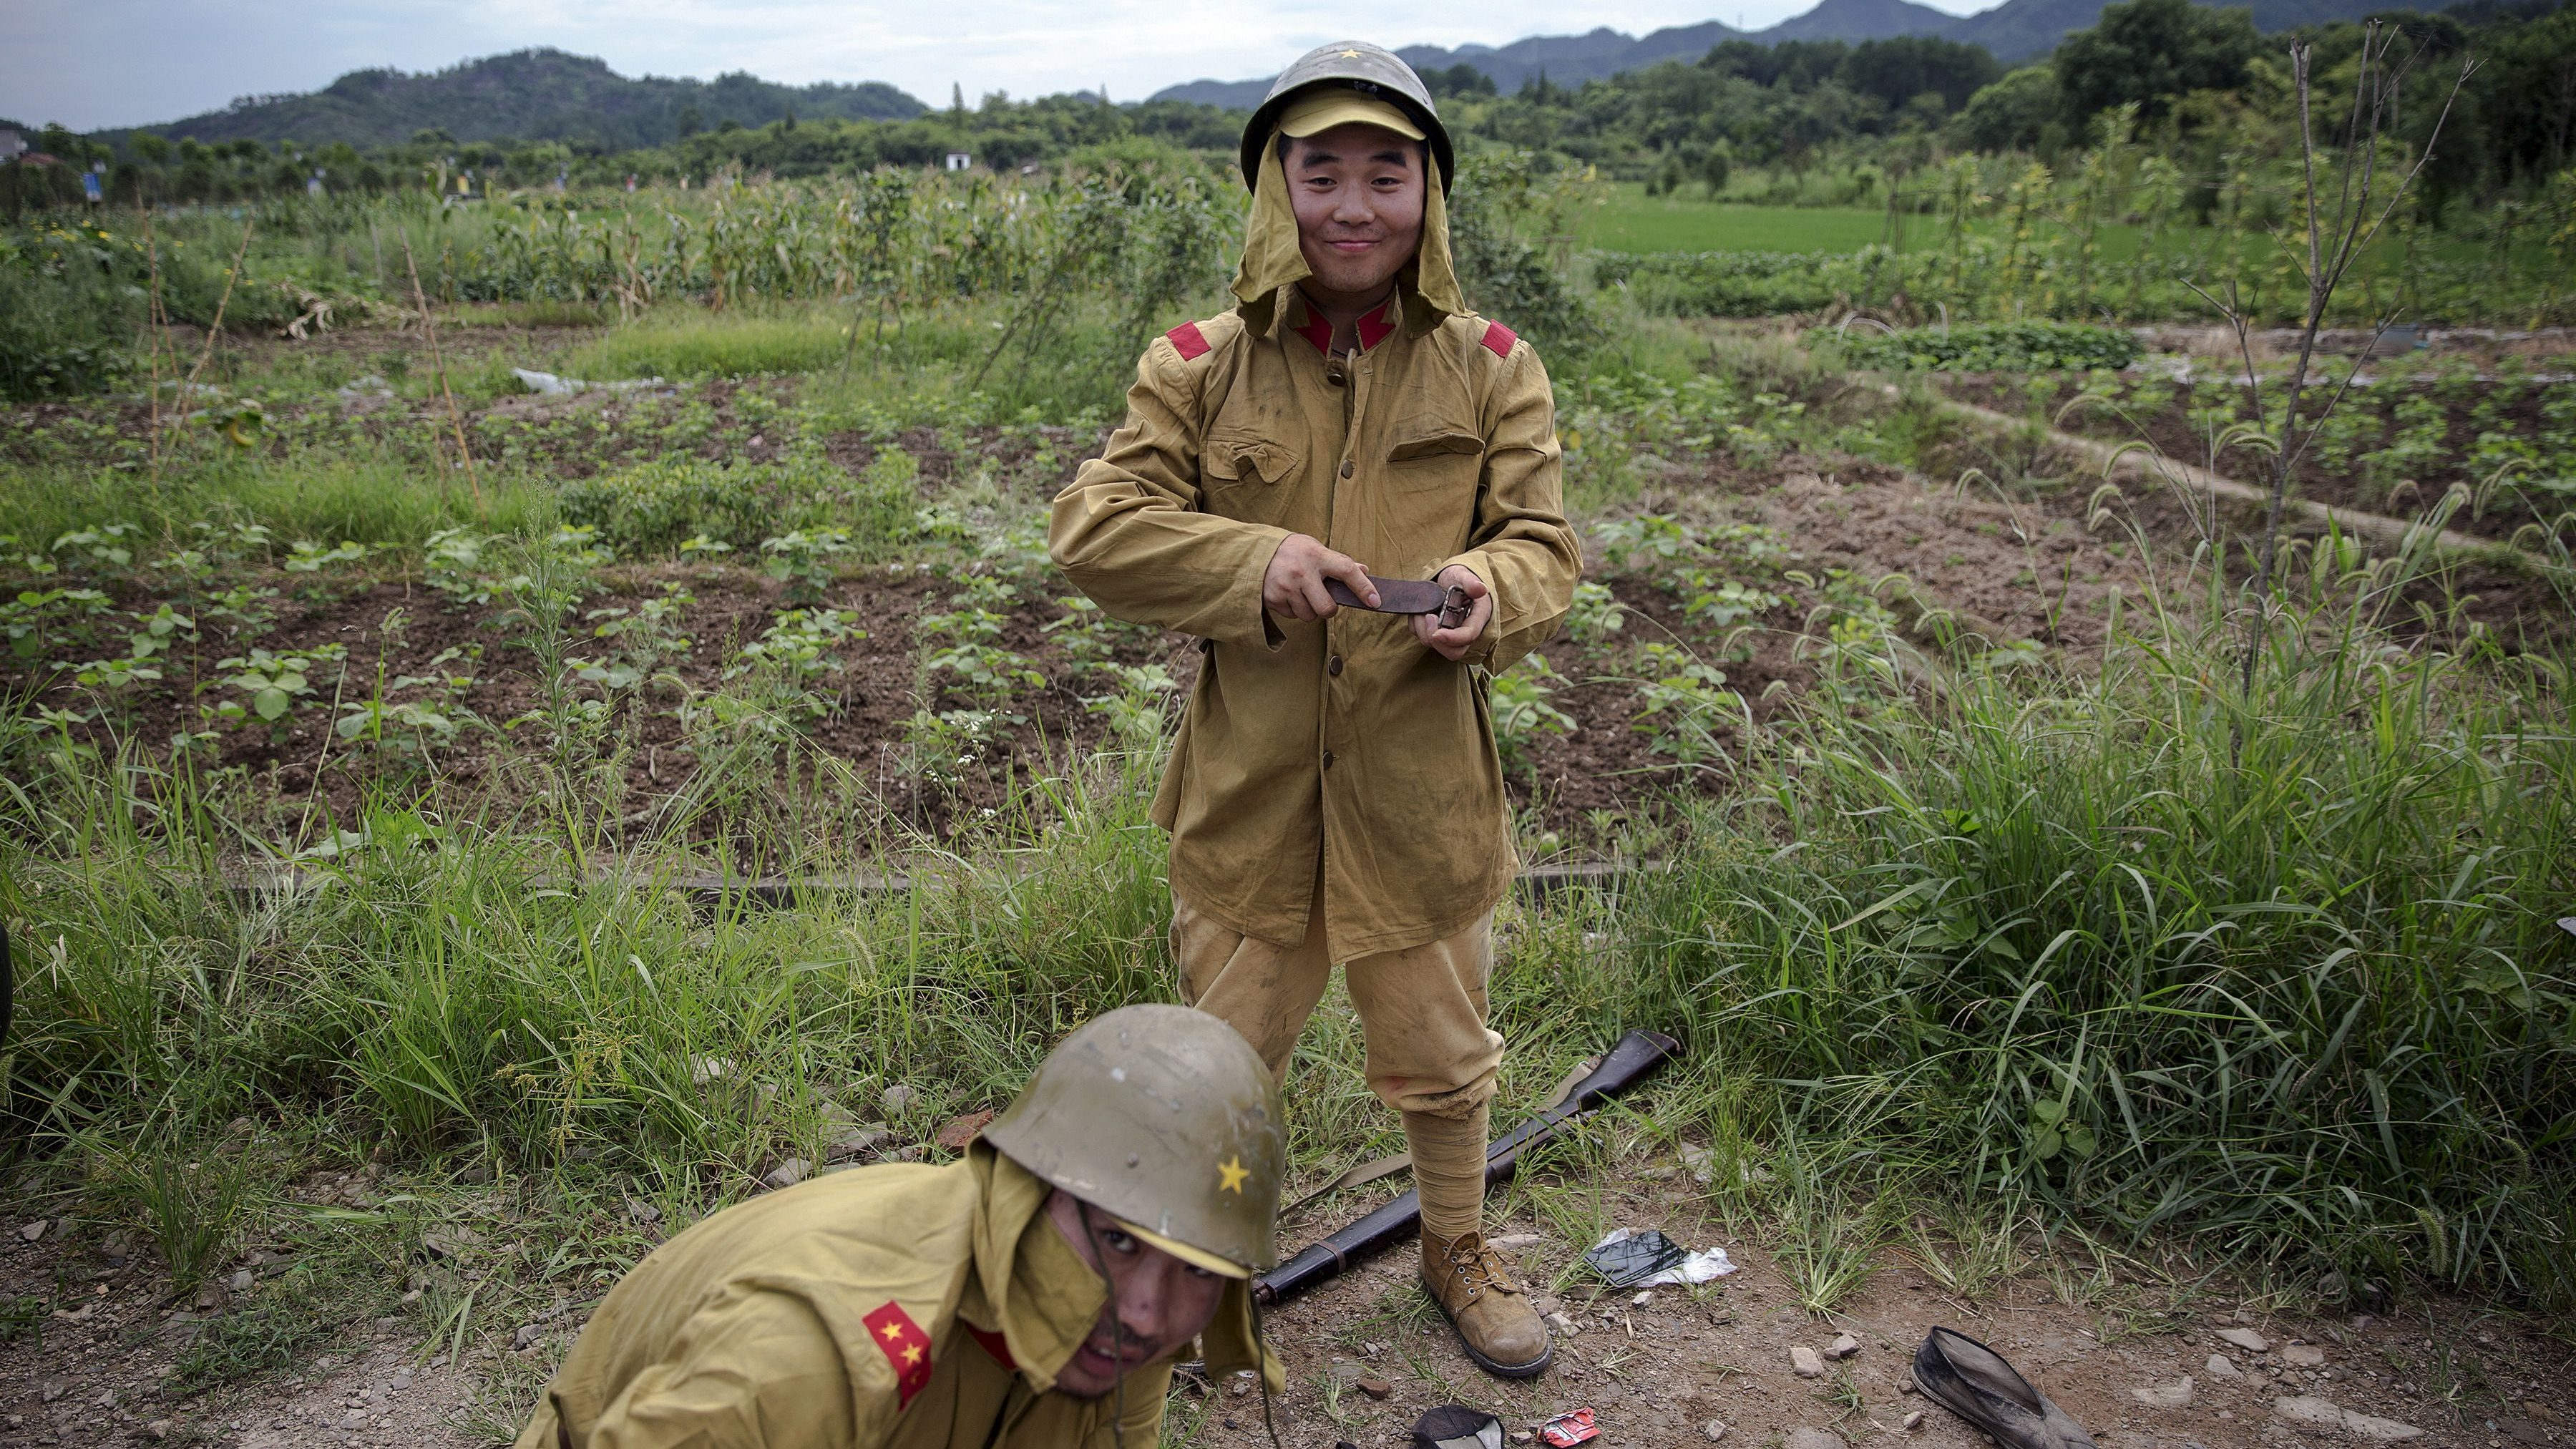 """Actors get dressed in historical Japanese army uniform costumes, minutes after playing small roles as Chinese soldiers on the set of """"The Last Prince"""" television series on location near Hengdian World Studios near Hengdian July 24, 2015. Extras and actors with smaller roles often take care of their own costumes and play more than one character in this production about the war against Japan. Director Li Xiaoqiang said the series is about a Qing Dynasty prince, who joined the Chinese nationalist army after suffering family misfortune. """"After he learnt more about the Communist Party, the prince began to understand what real revolution and the anti-Japanese war meant, and turned to the Communist Party to fight Japan"""", the director added. According to local media, more than 10 new movies, 12 TV dramas, 20 documentaries and 183 war-themed stage performances will be released in China to coincide with the 70th anniversary of the end of World War Two."""